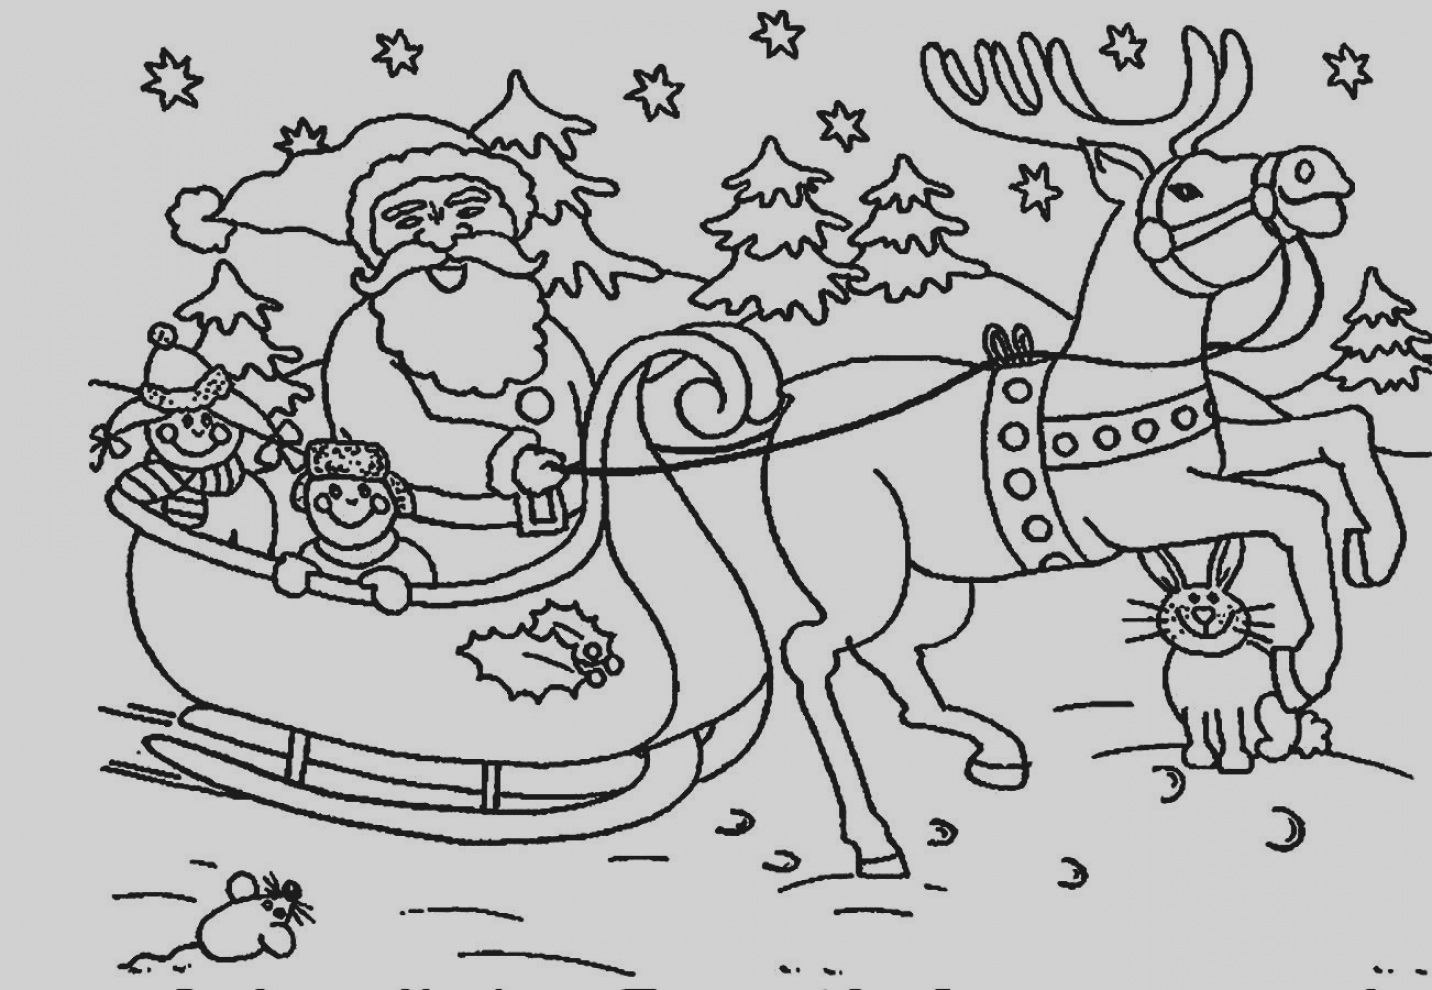 Santa Suit Coloring Page Getcoloringpages With Funny Christmas Pages GetColoringPages Org